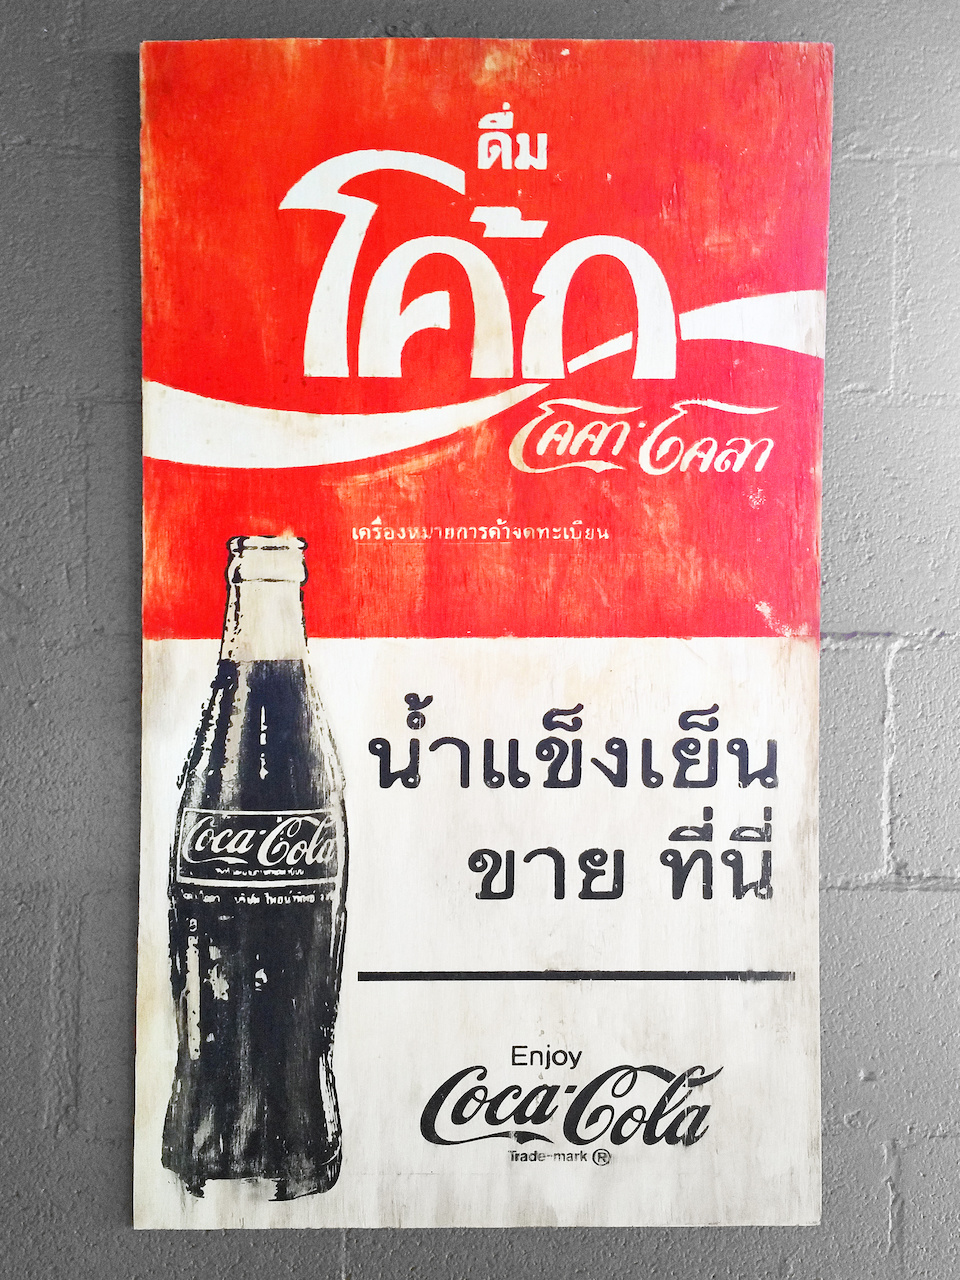 A vintage image of a Thai Coca-Cola ad at wooden goat